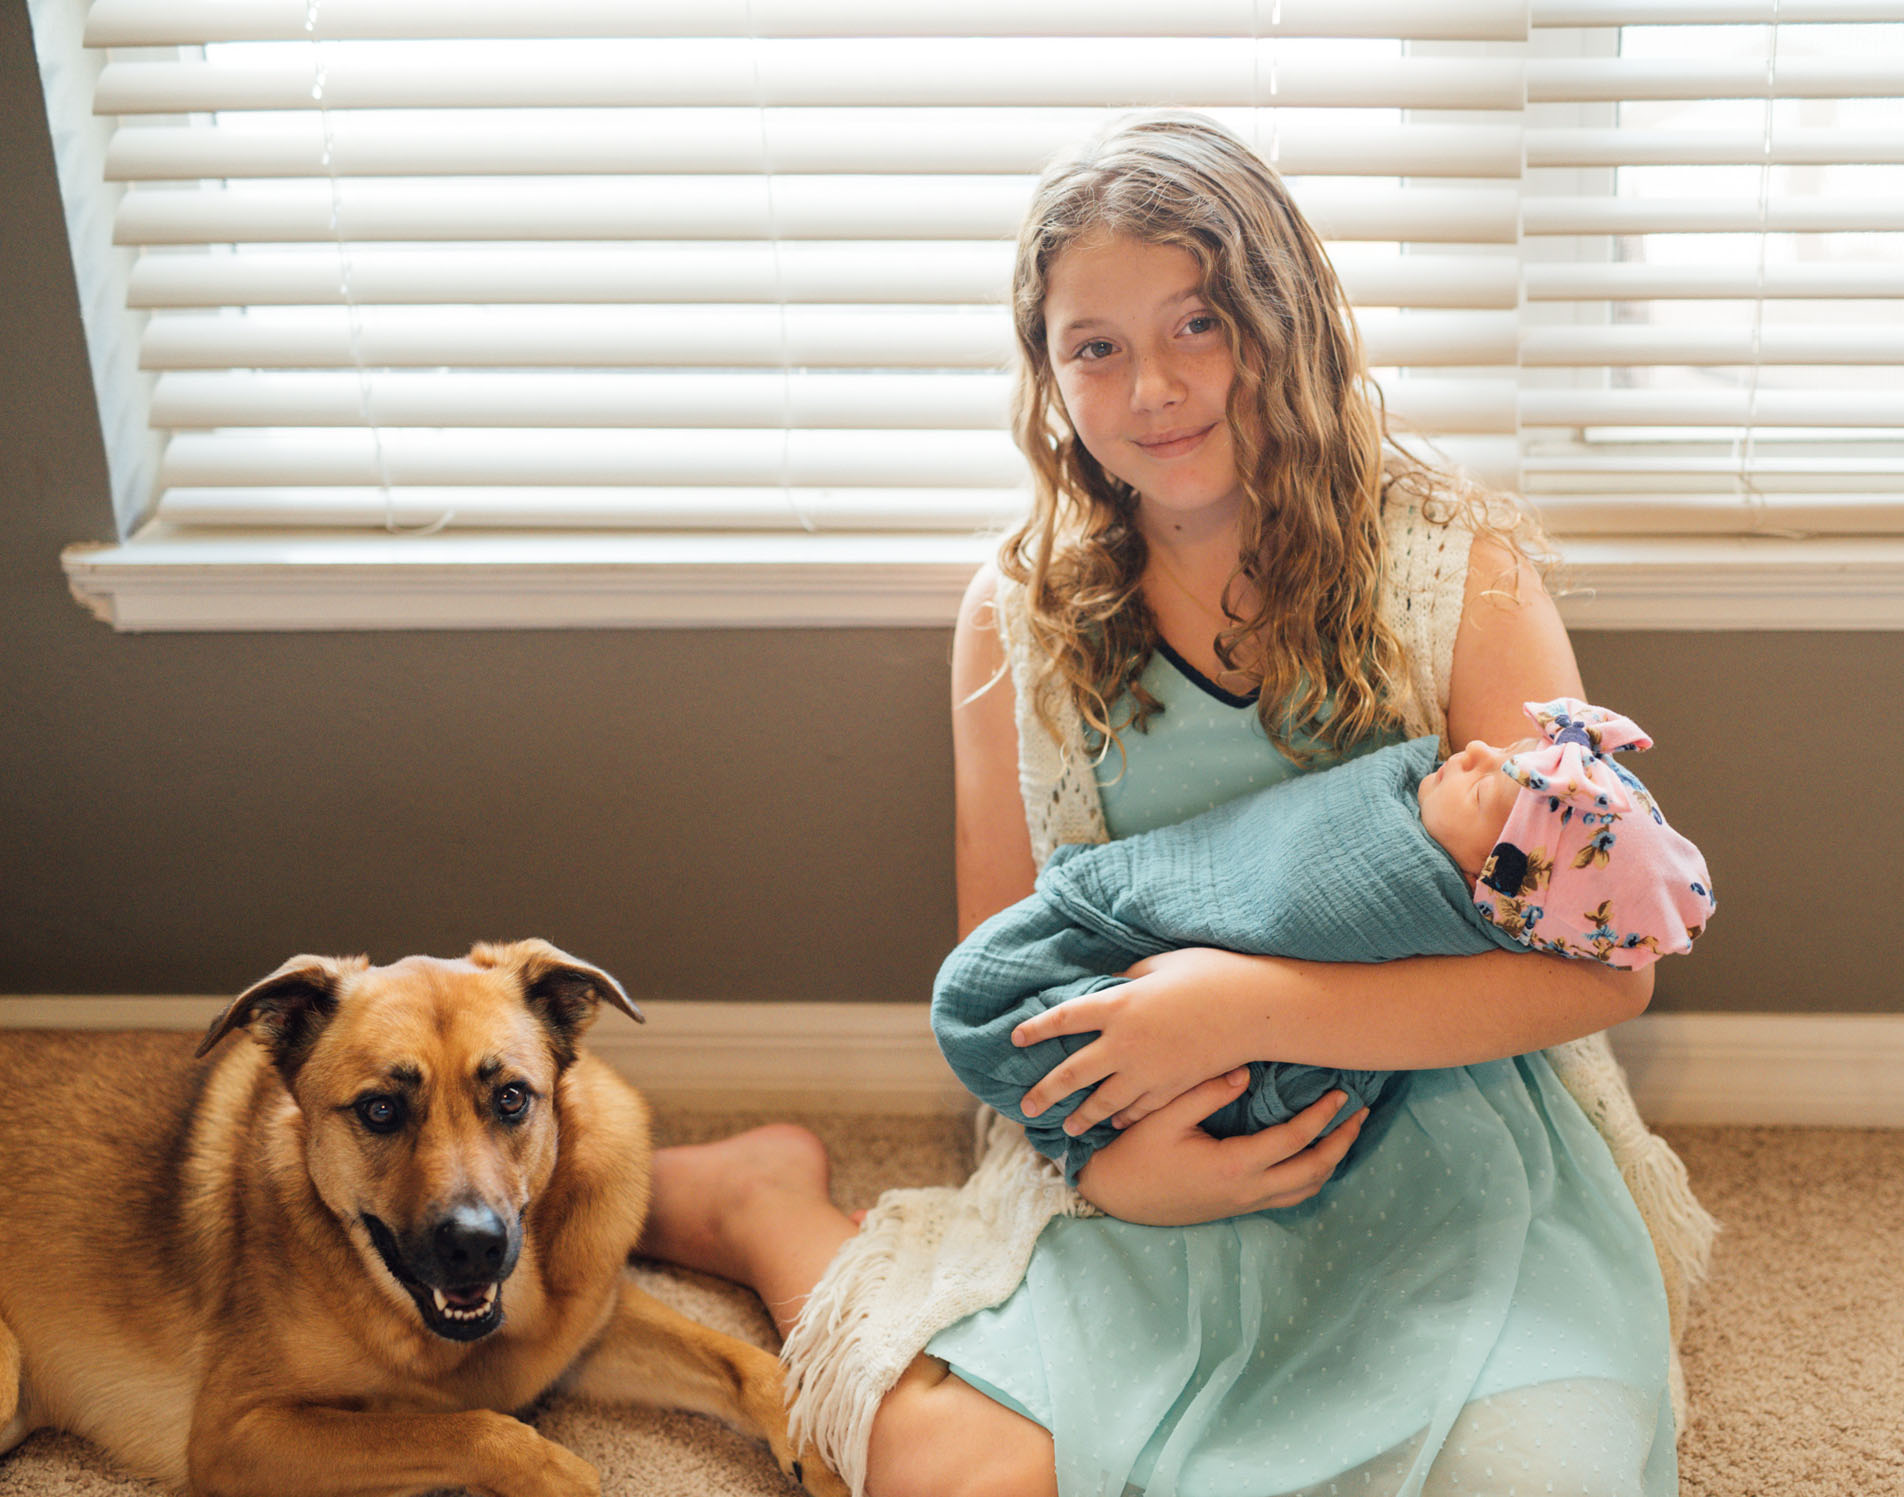 orlando newborn session with dog